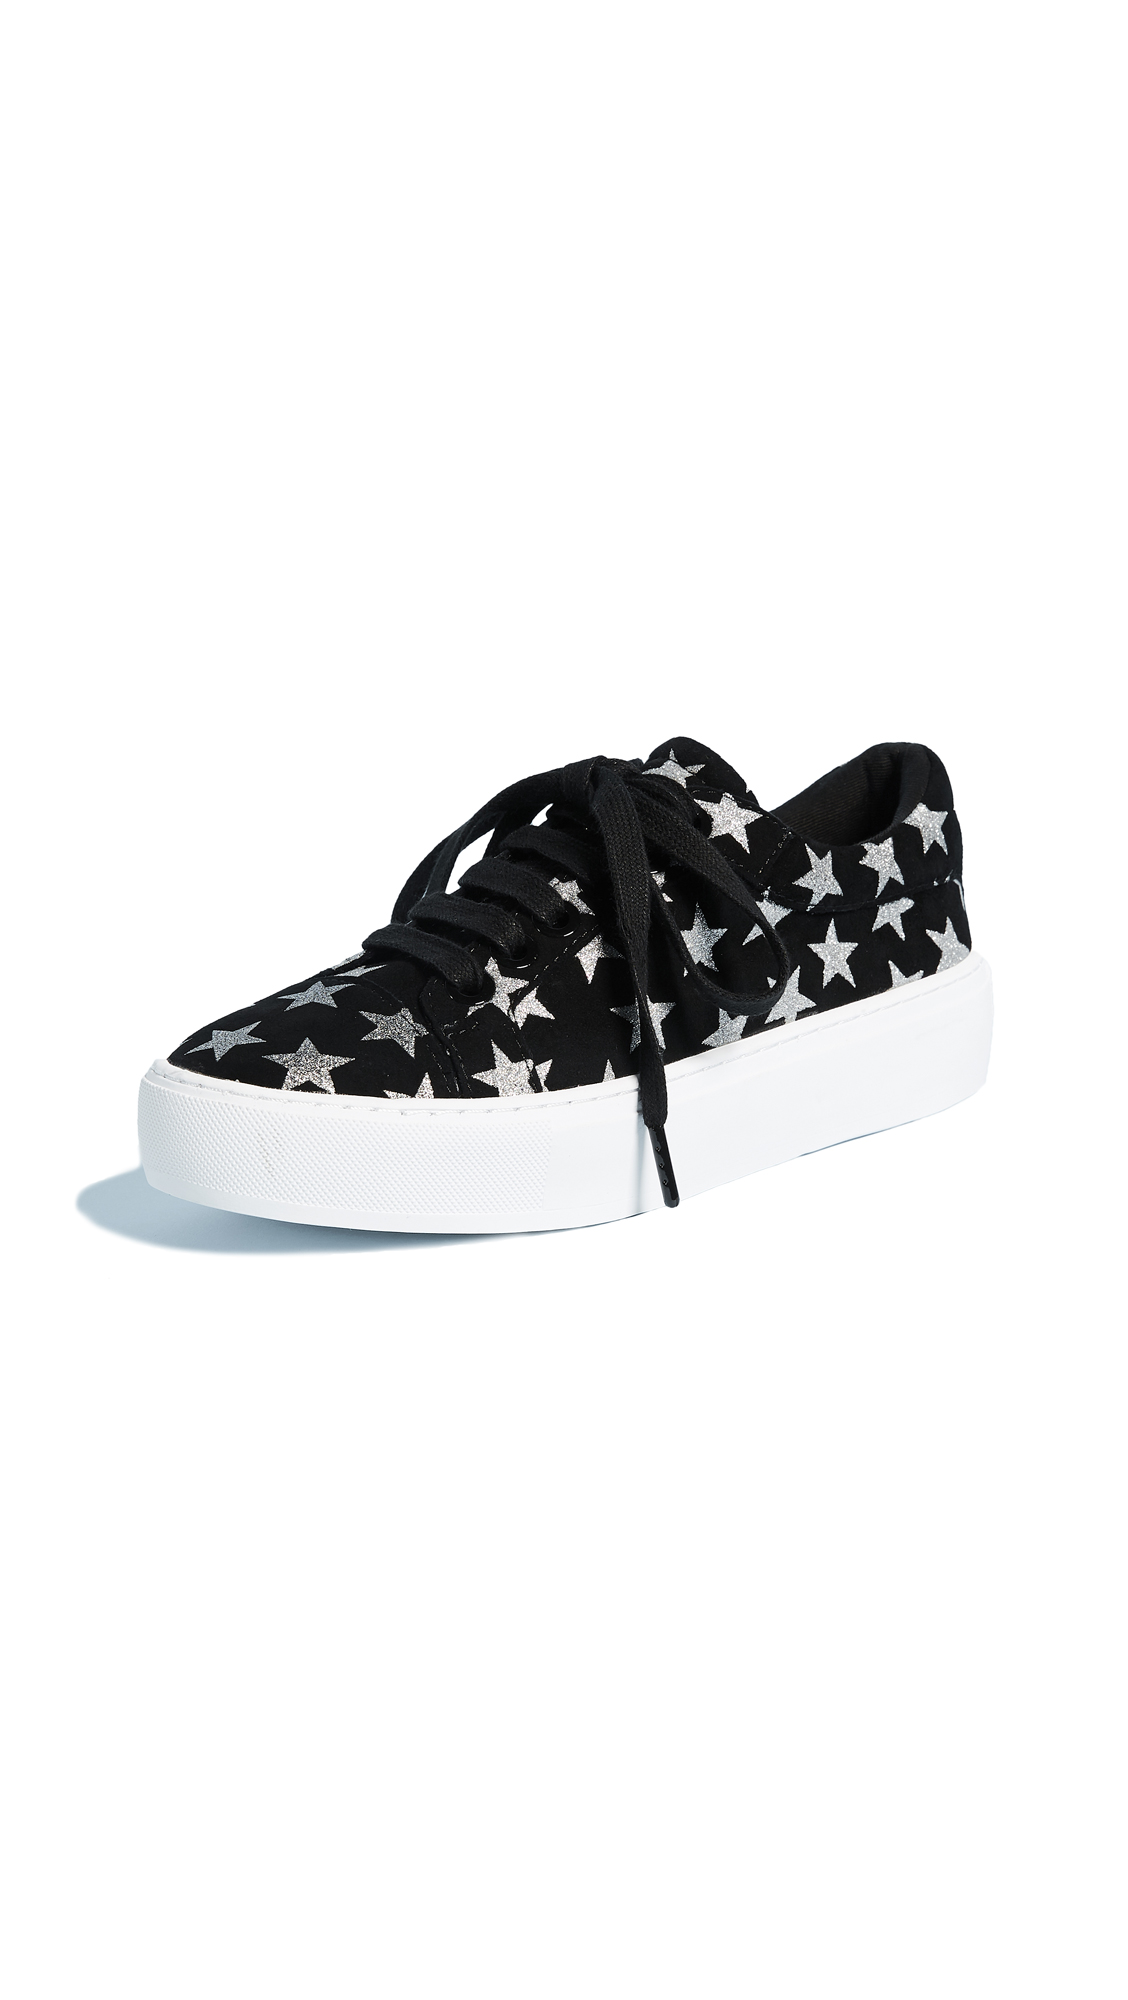 Rebecca Minkoff Nadia Galaxy Print Sneakers - Black